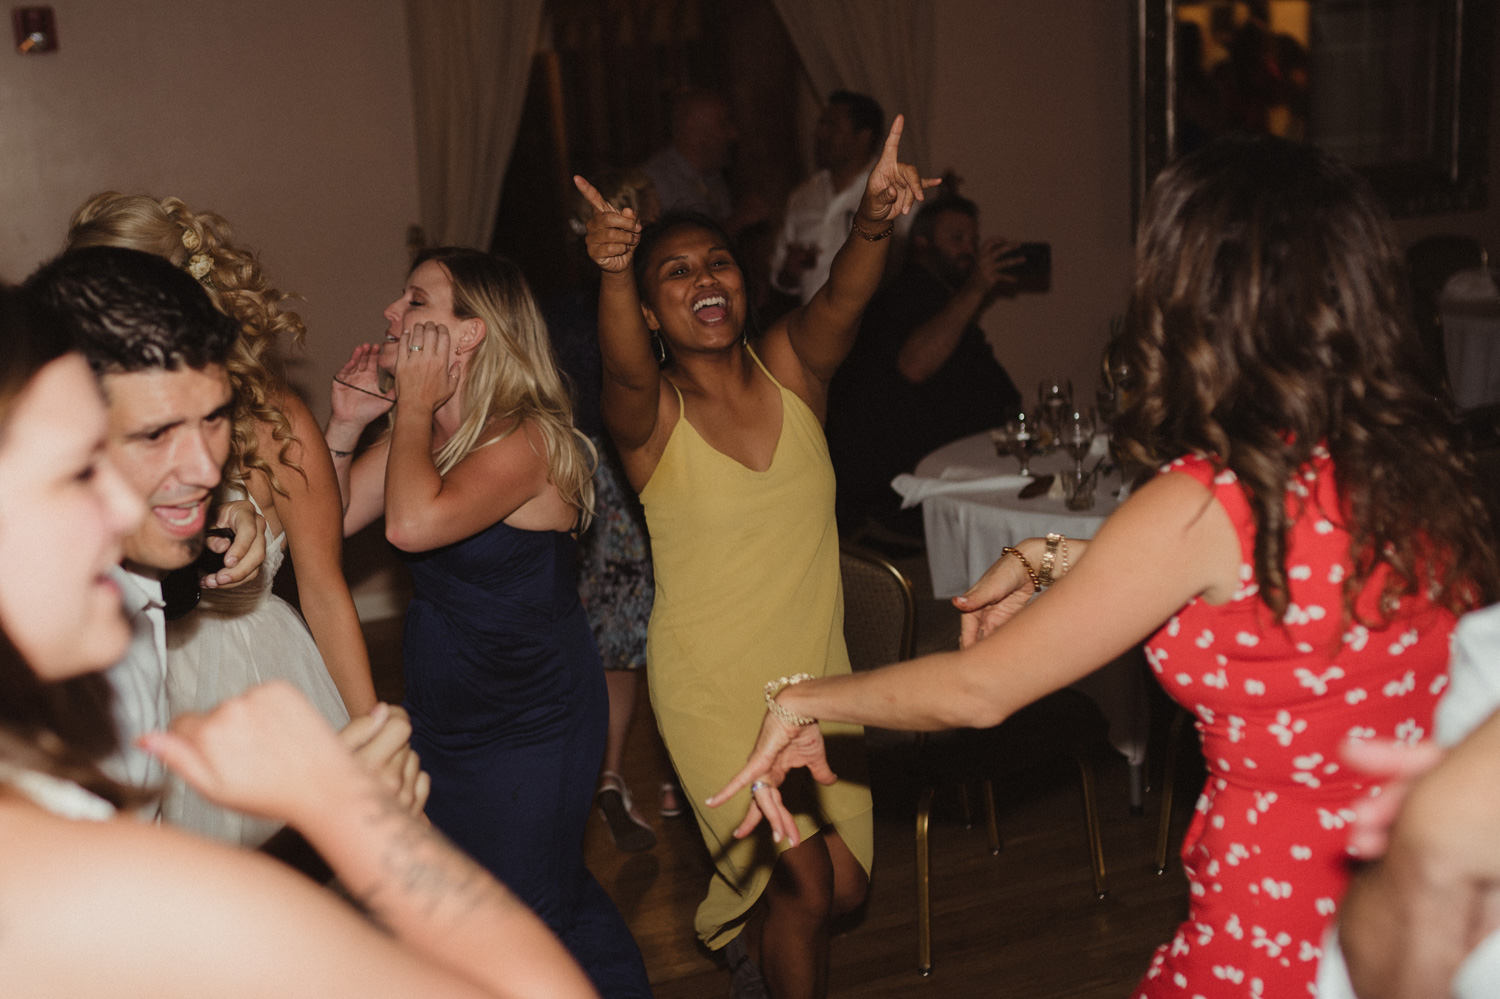 Wedgewood Sequoia Mansion wedding reception dancing photo